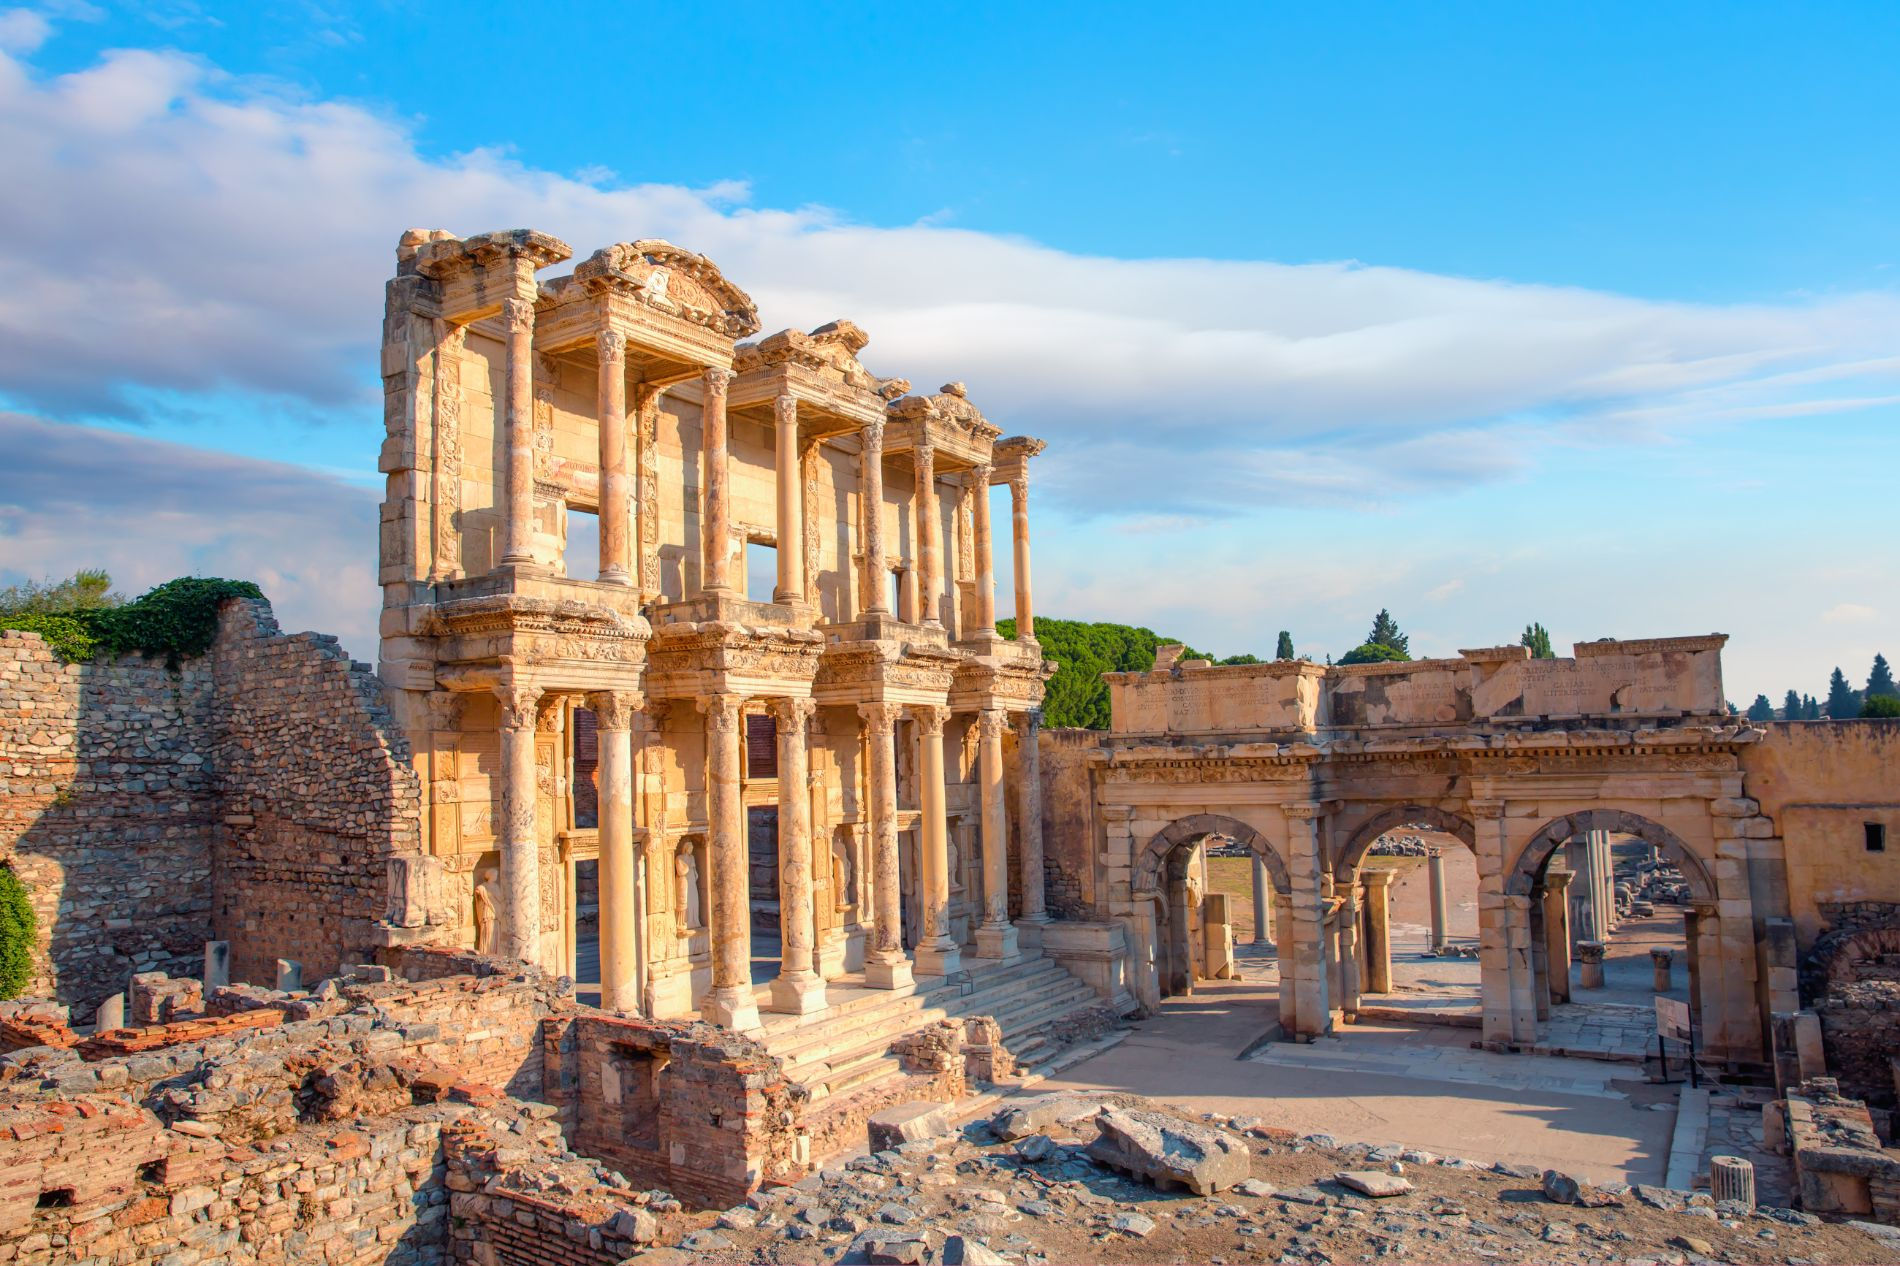 Image of Ephesus in Turkey